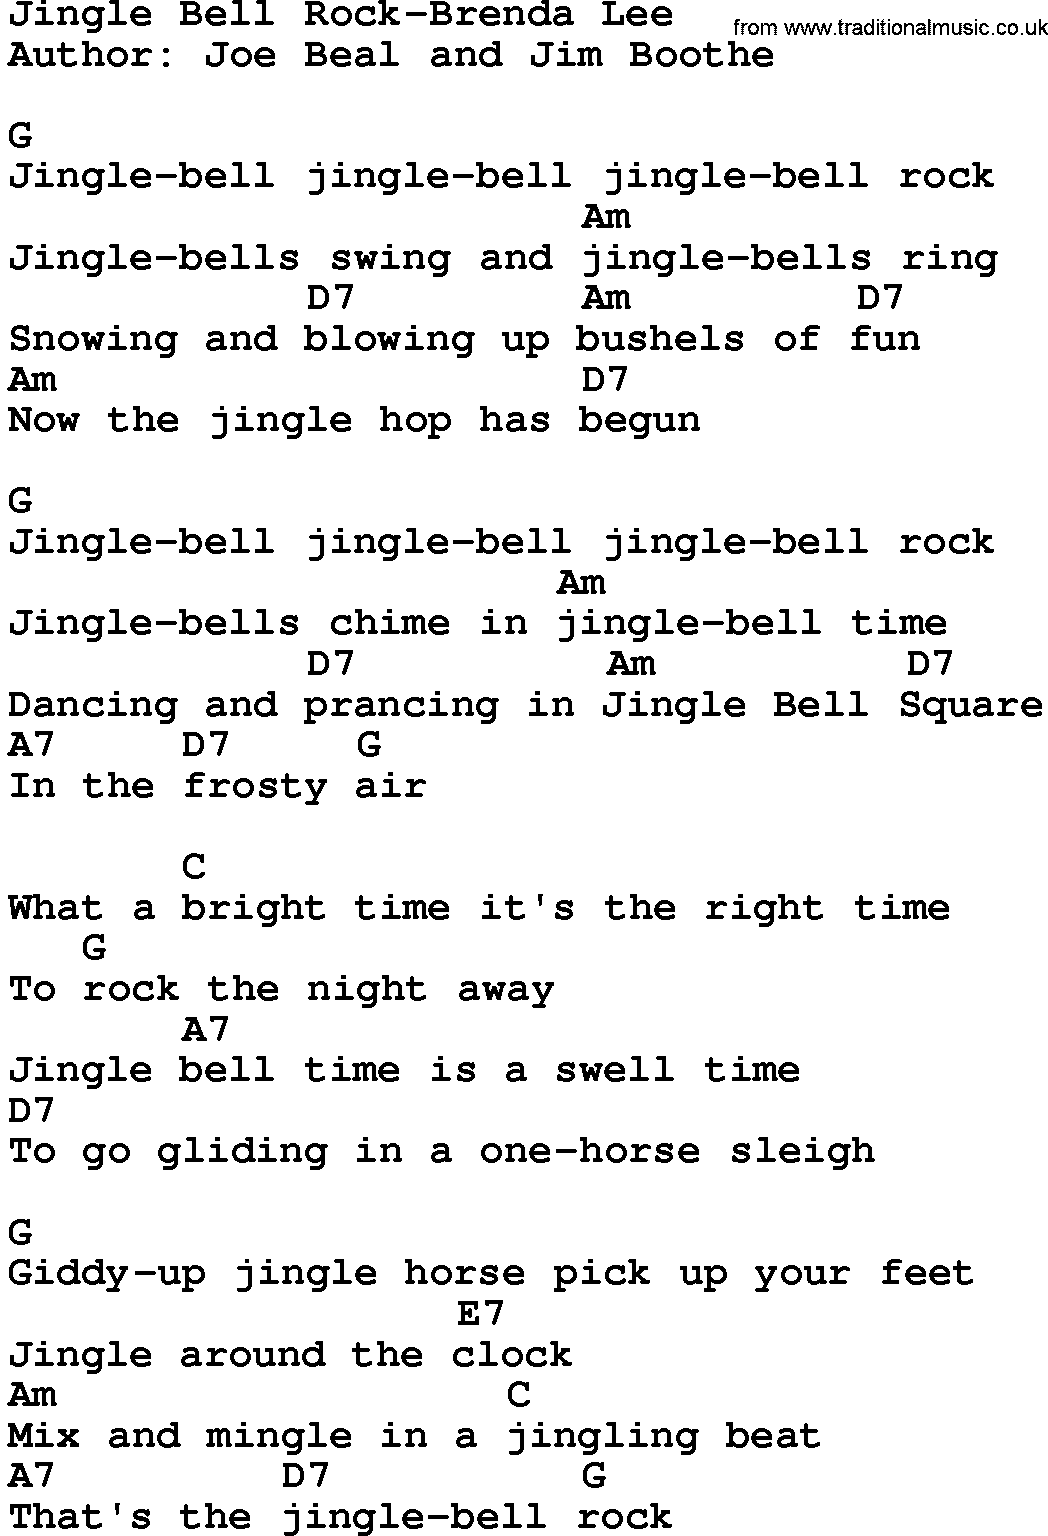 Country Music:Jingle Bell Rock-Brenda Lee Lyrics and Chords